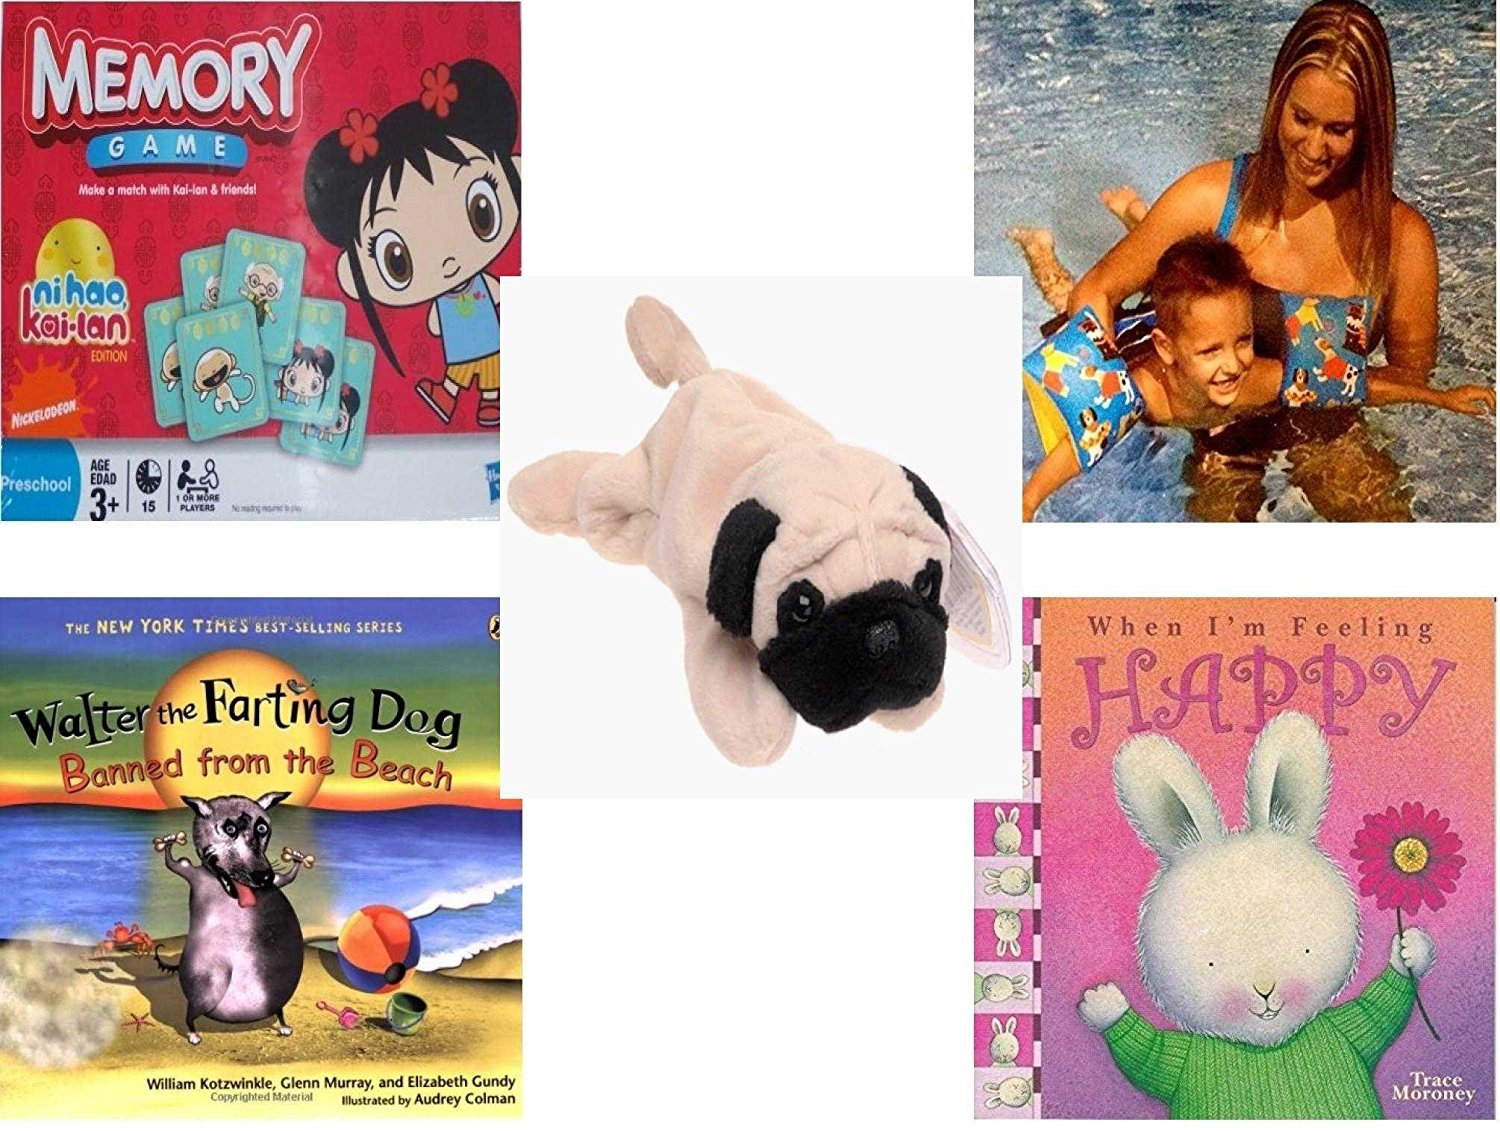 Children s Gift Bundle - Ages 3-5  5 Piece  - Ni Hao Kai-Lan Edition Memory  Game - Arm Bands for Swimming Pug Design Toy - TY Beanie Baby - Pugsly the  Pug ... 1c5fda427c